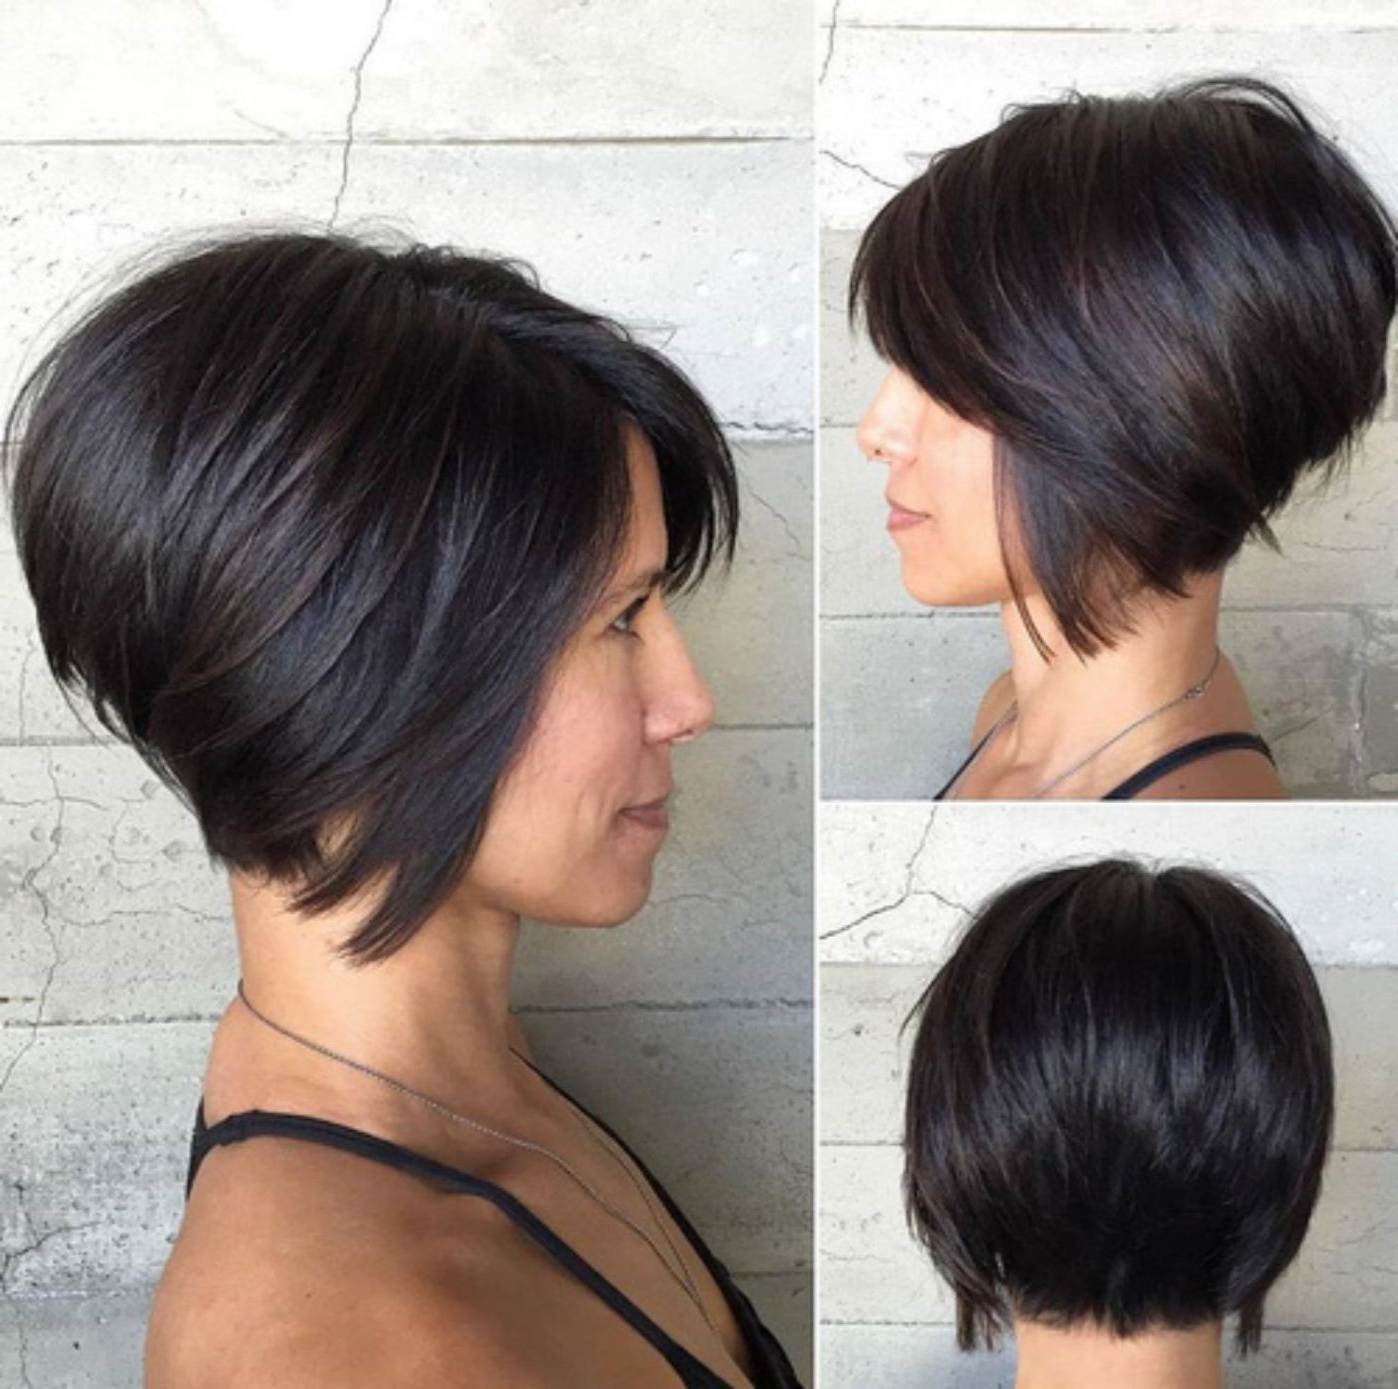 60 Classy Short Haircuts And Hairstyles For Thick Hair In 2018 Pertaining To Short Inverted Bob Haircuts (Gallery 11 of 25)